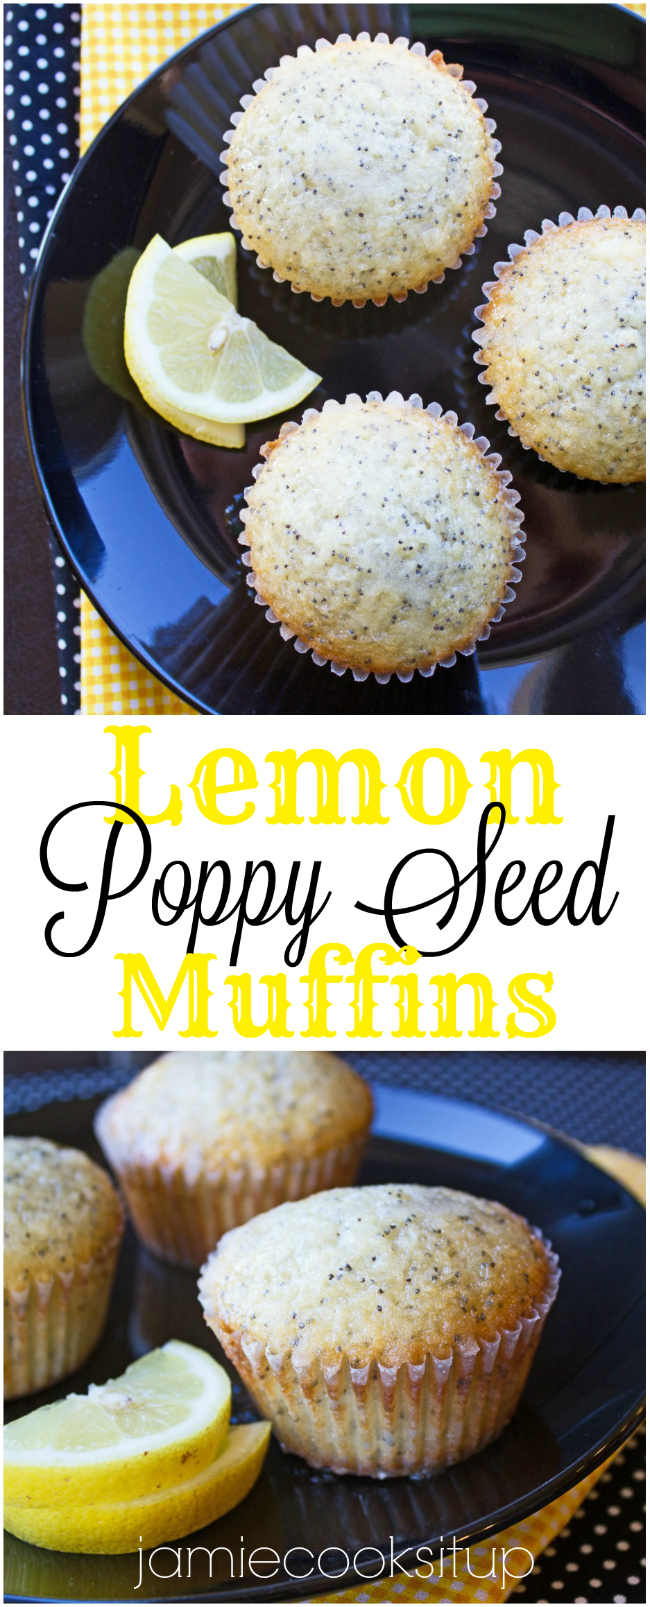 Lemon Popp Seed Muffins at Jamie Cooks It Up!